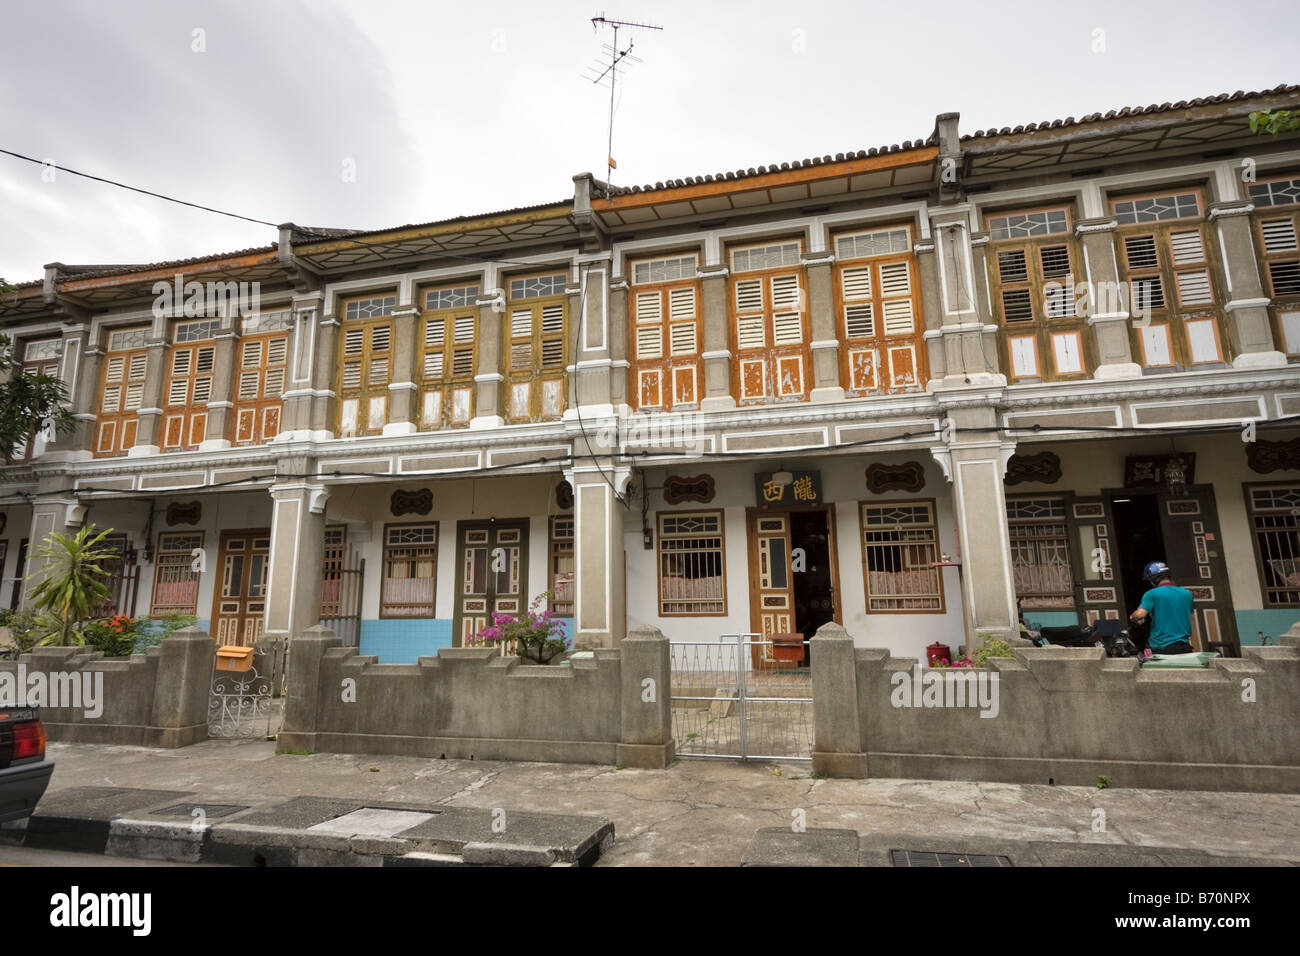 Old shophouses in need of restoration in Georgetown, Penang, Malaysia - Stock Image